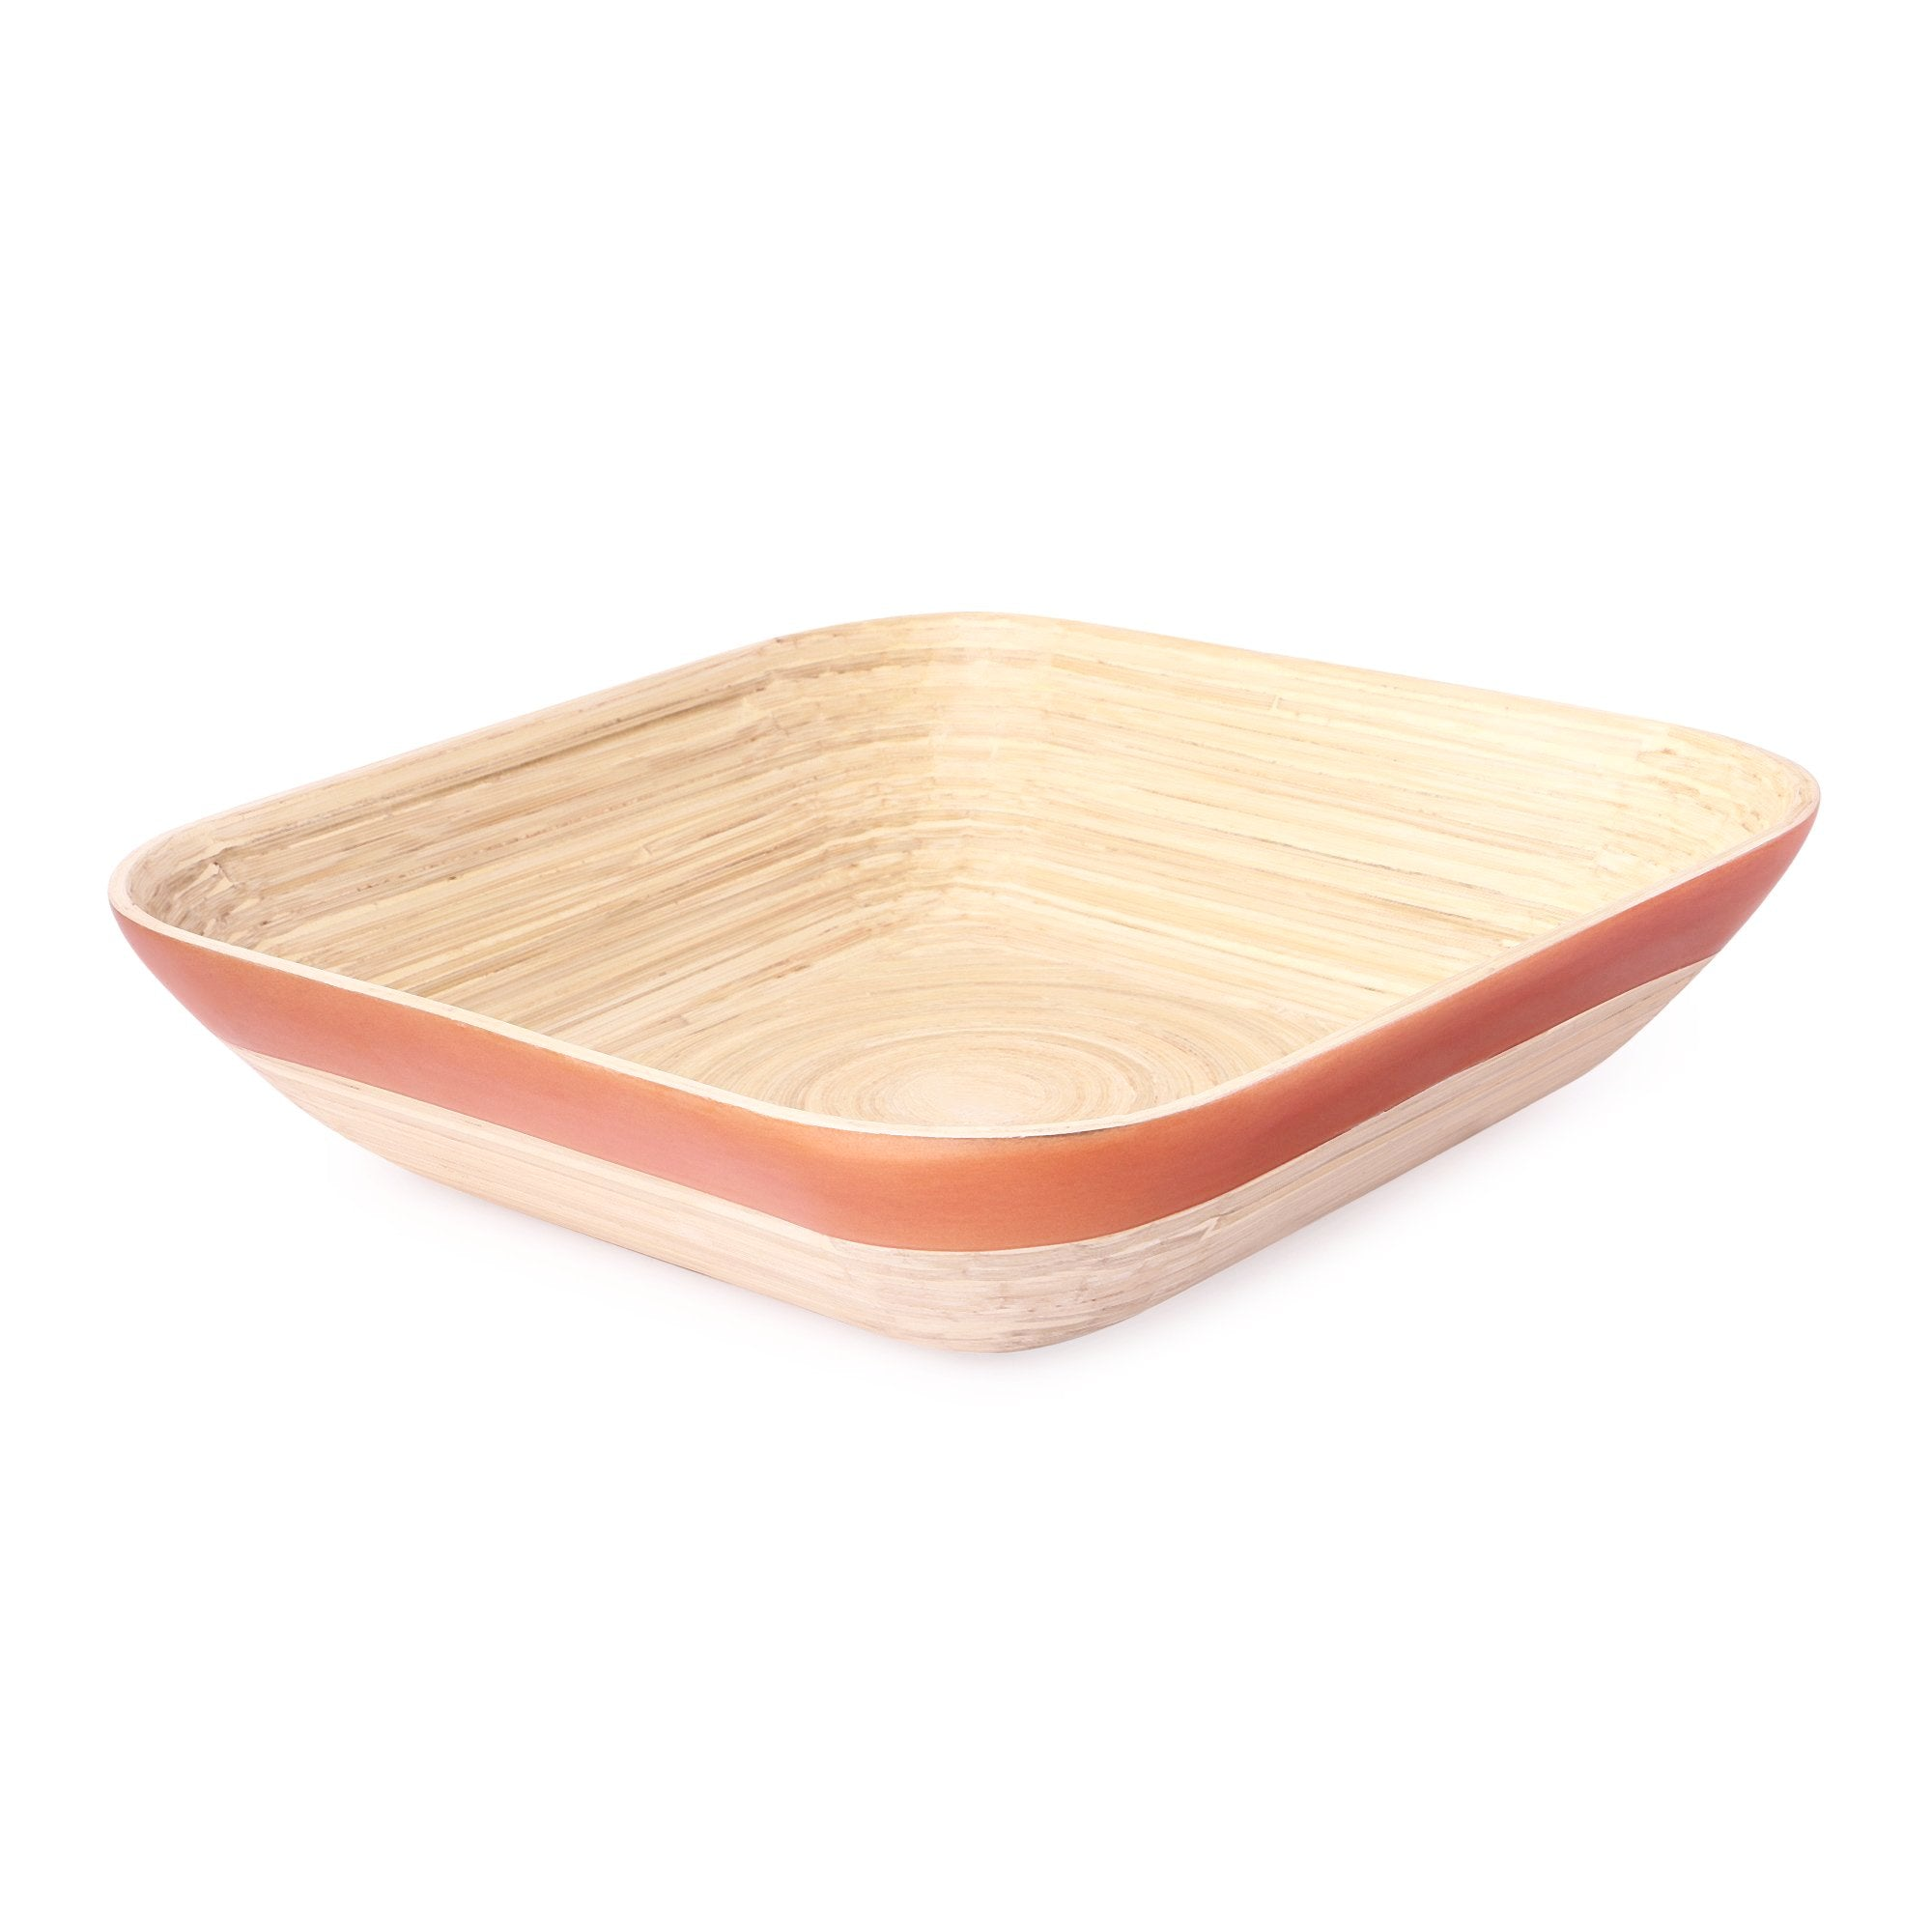 Bamboo Square Round Edge Tray Basket With Copper Rim - Nestasia Home Decor